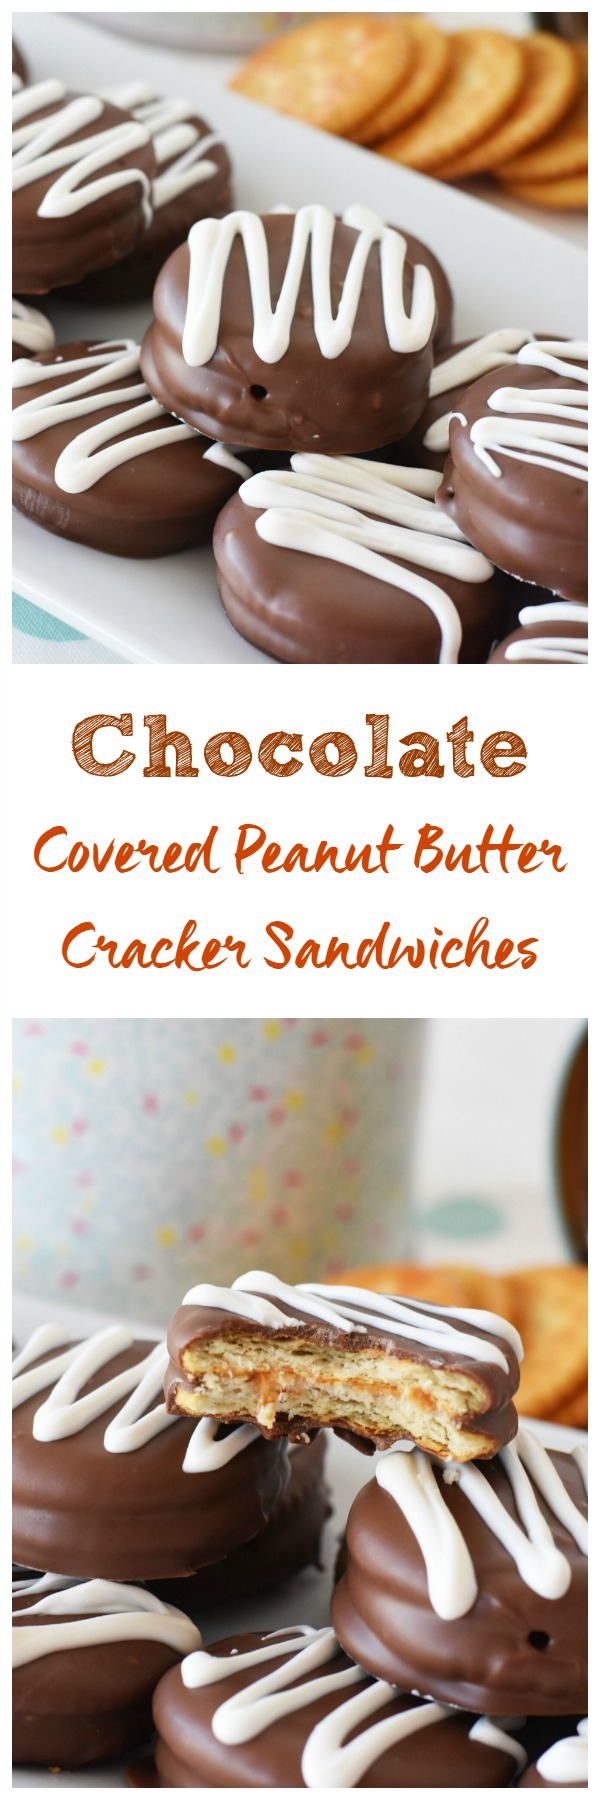 Chocolate Covered Peanut Butter Cracker Sandwiches- A delicious homemade candy bar treat that is the perfect marriage of chocolate & peanut butter goodness.